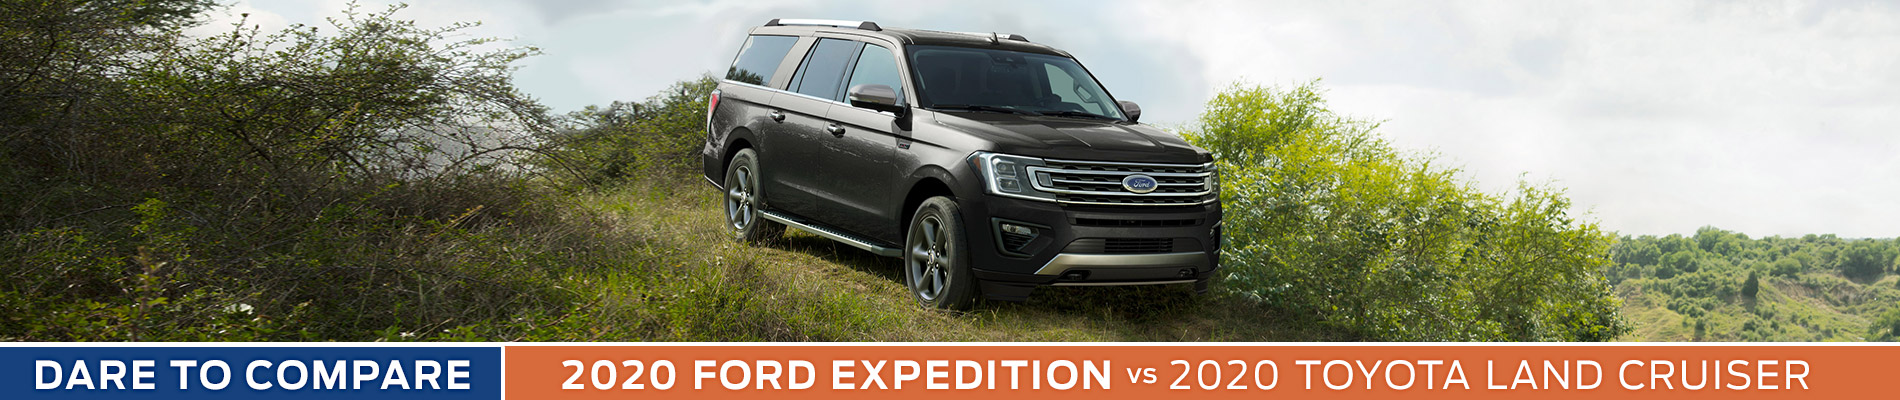 2020 Ford Expedition vs Toyota Land Cruiser - Sun State Ford - Orlando, FL